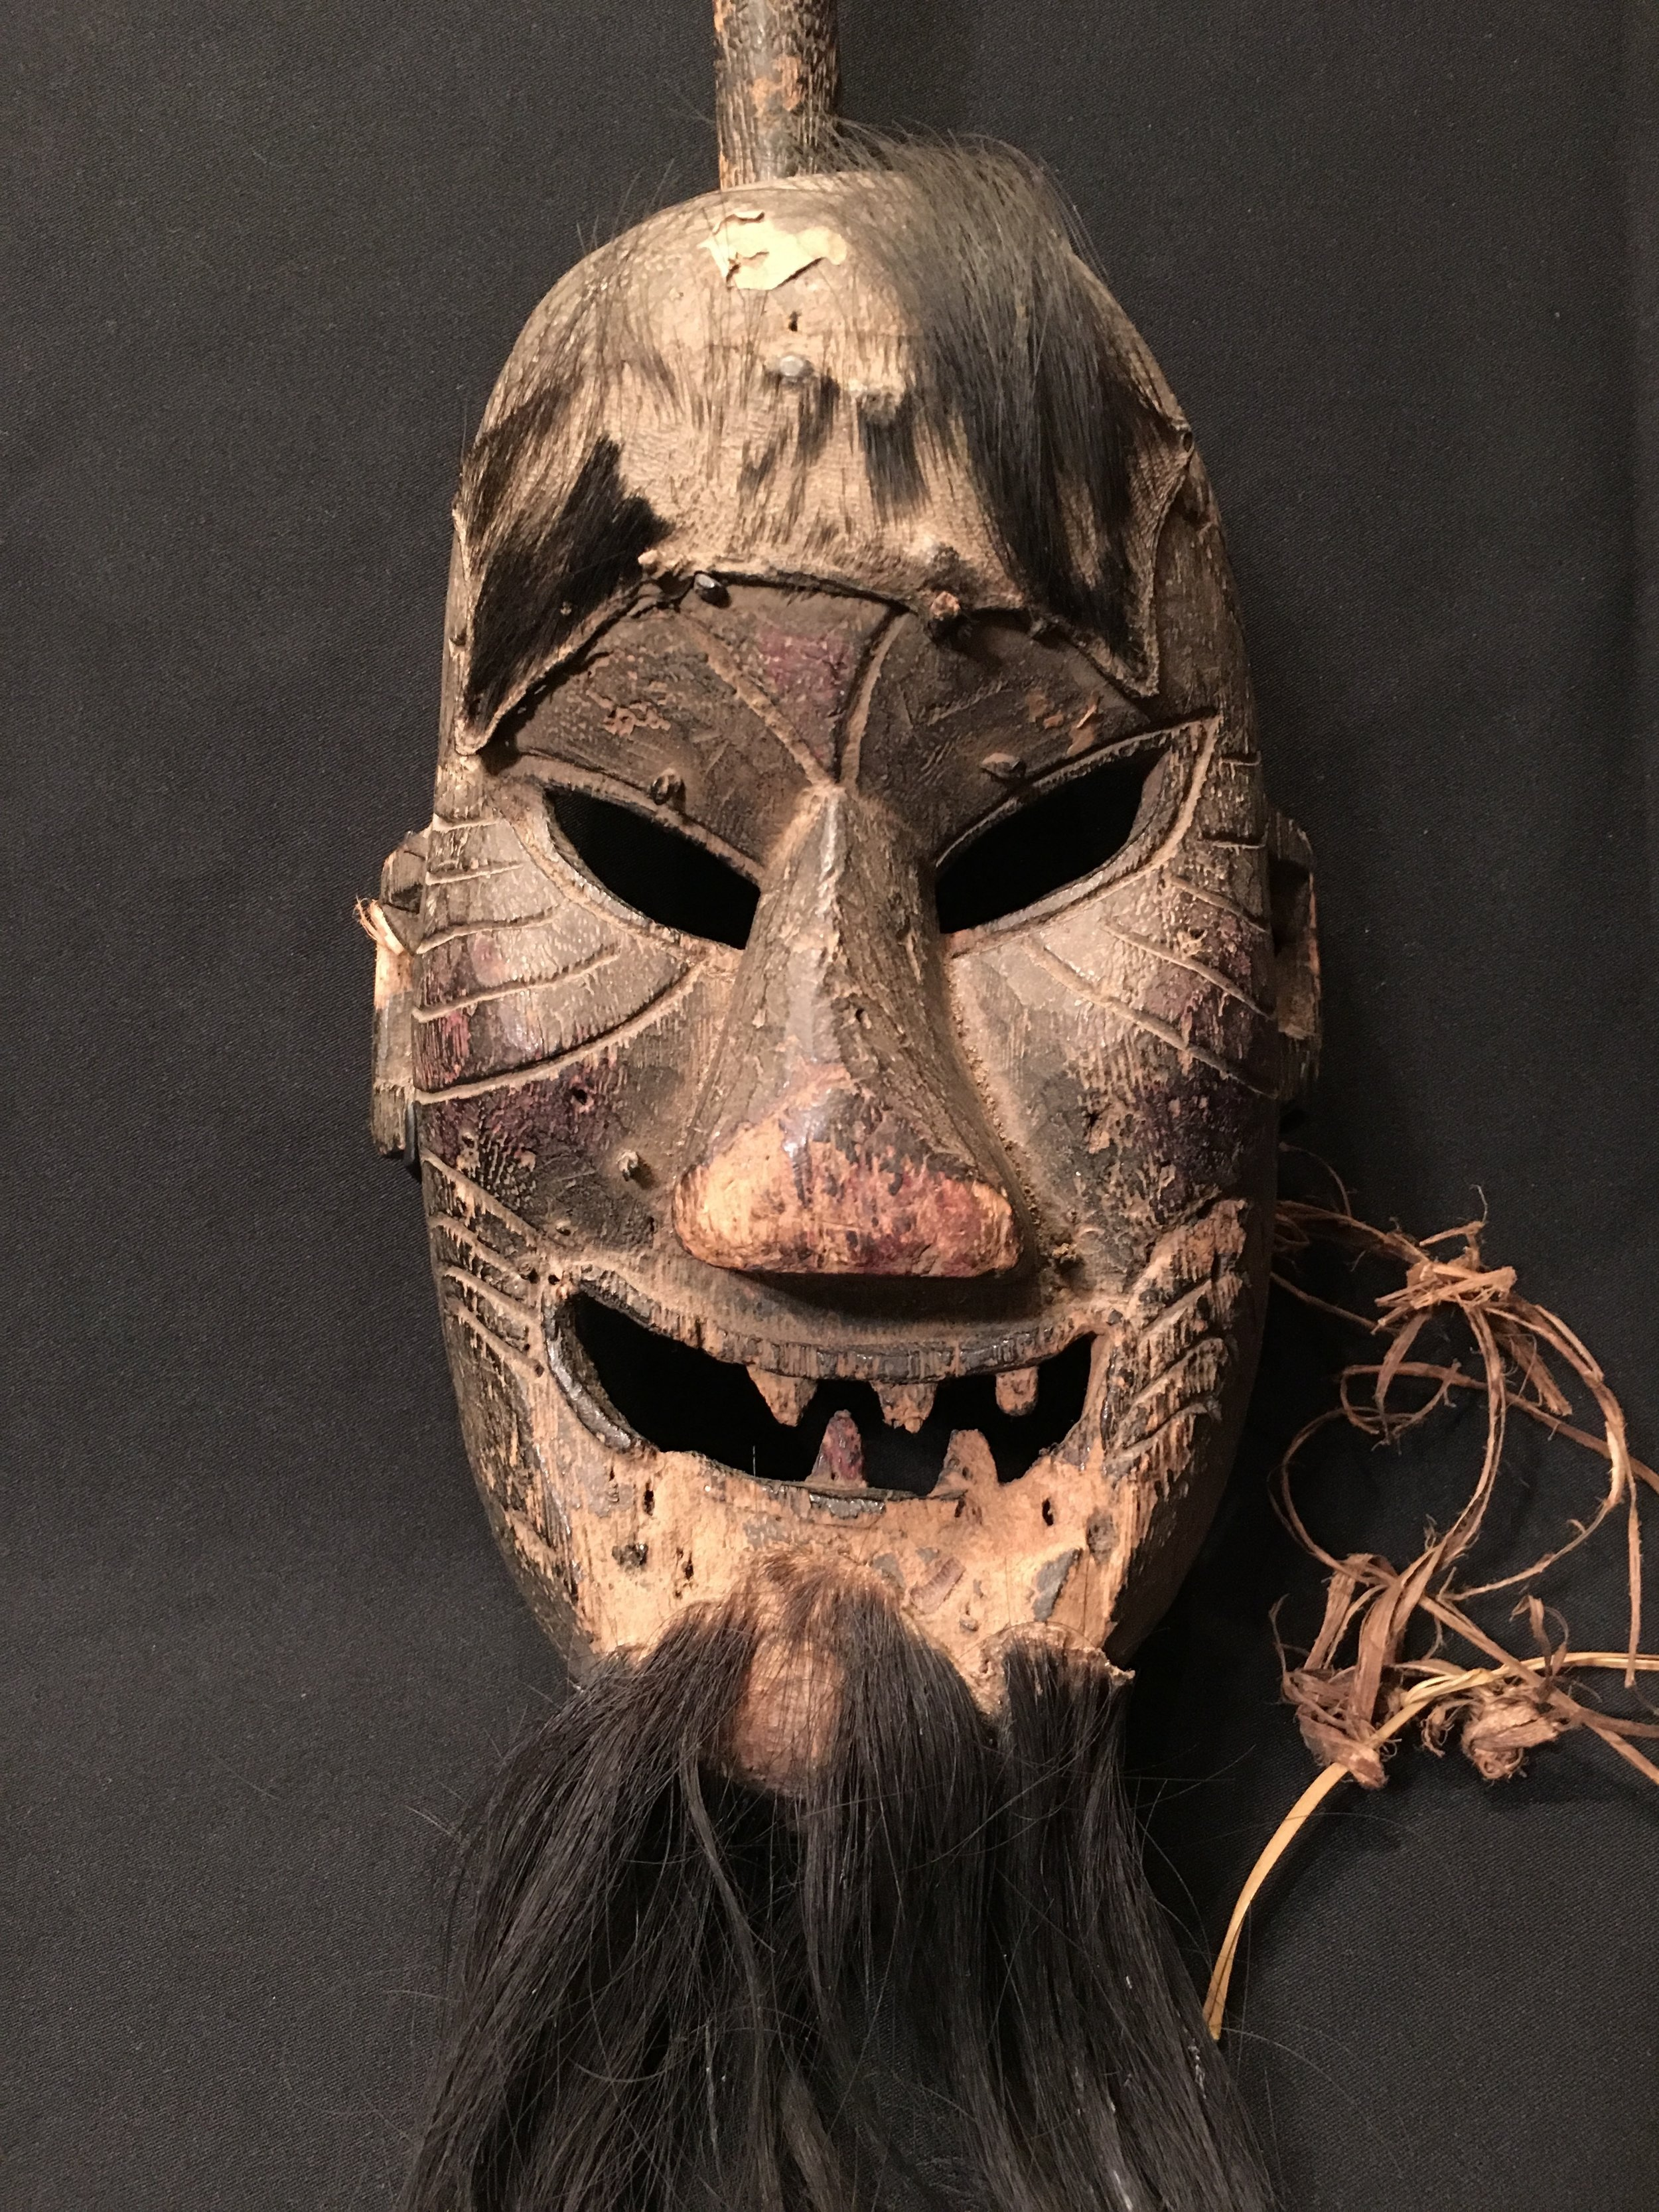 Yao priest or shaman's ceremonial wood mask, China/northern Thailand or Laos, late 19th century.